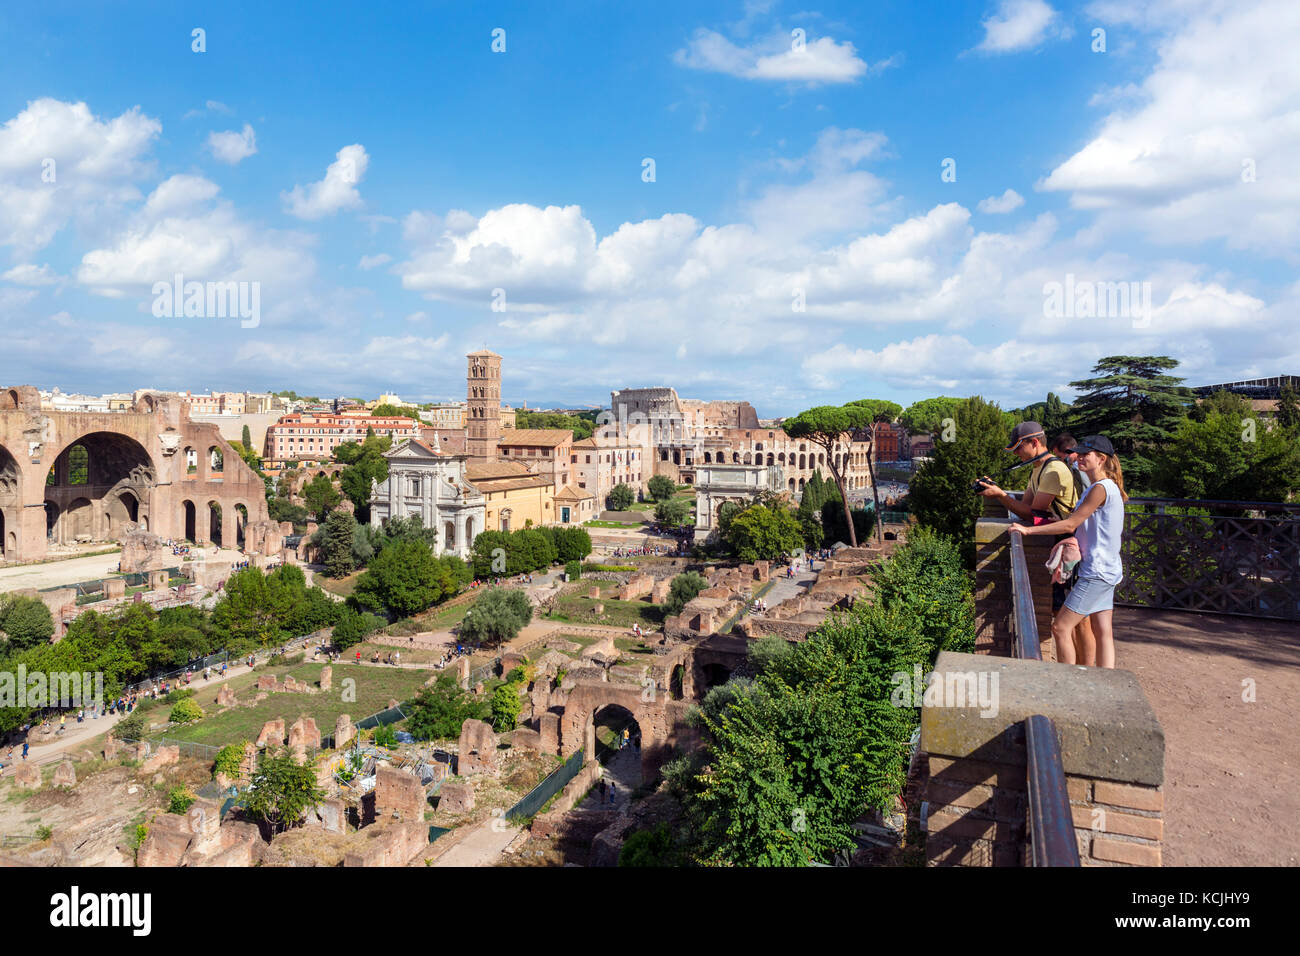 Rome Forum. View from the Palatine Hill over the ancient ruins of the Roman Forum, Rome, Italy - Stock Image